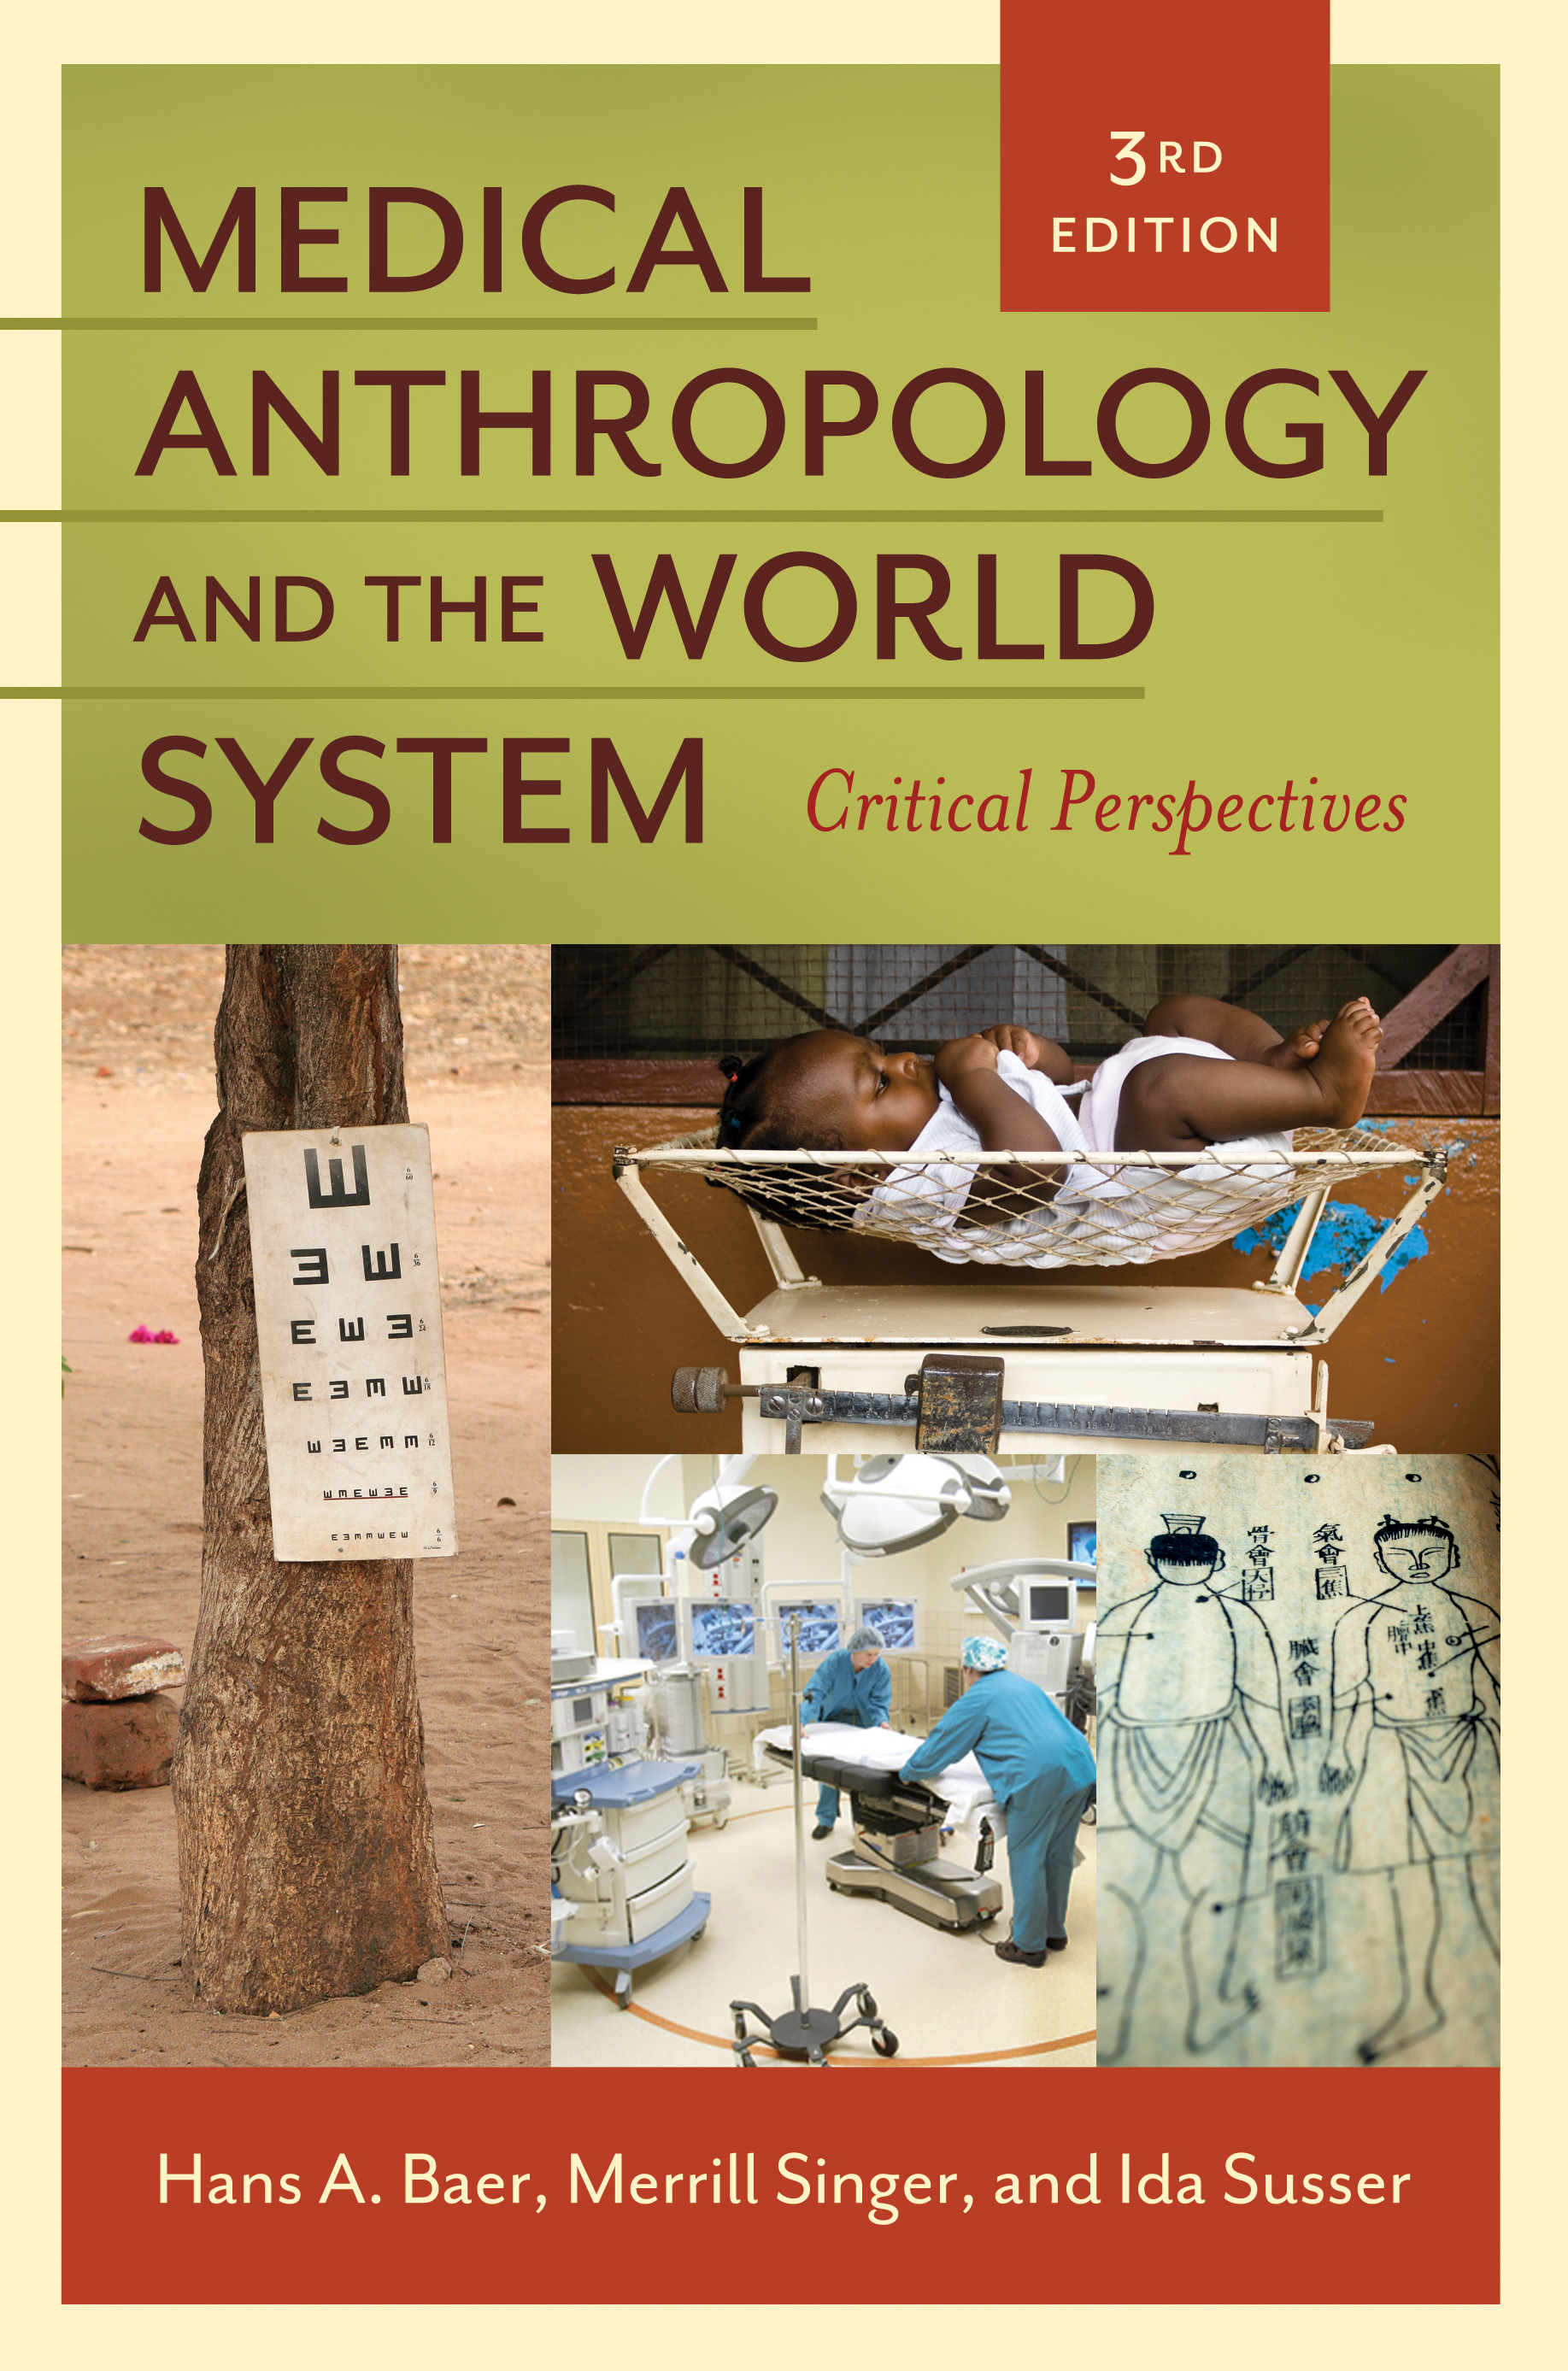 Medical Anthropology and the World System: Critical Perspectives, 3rd Edition